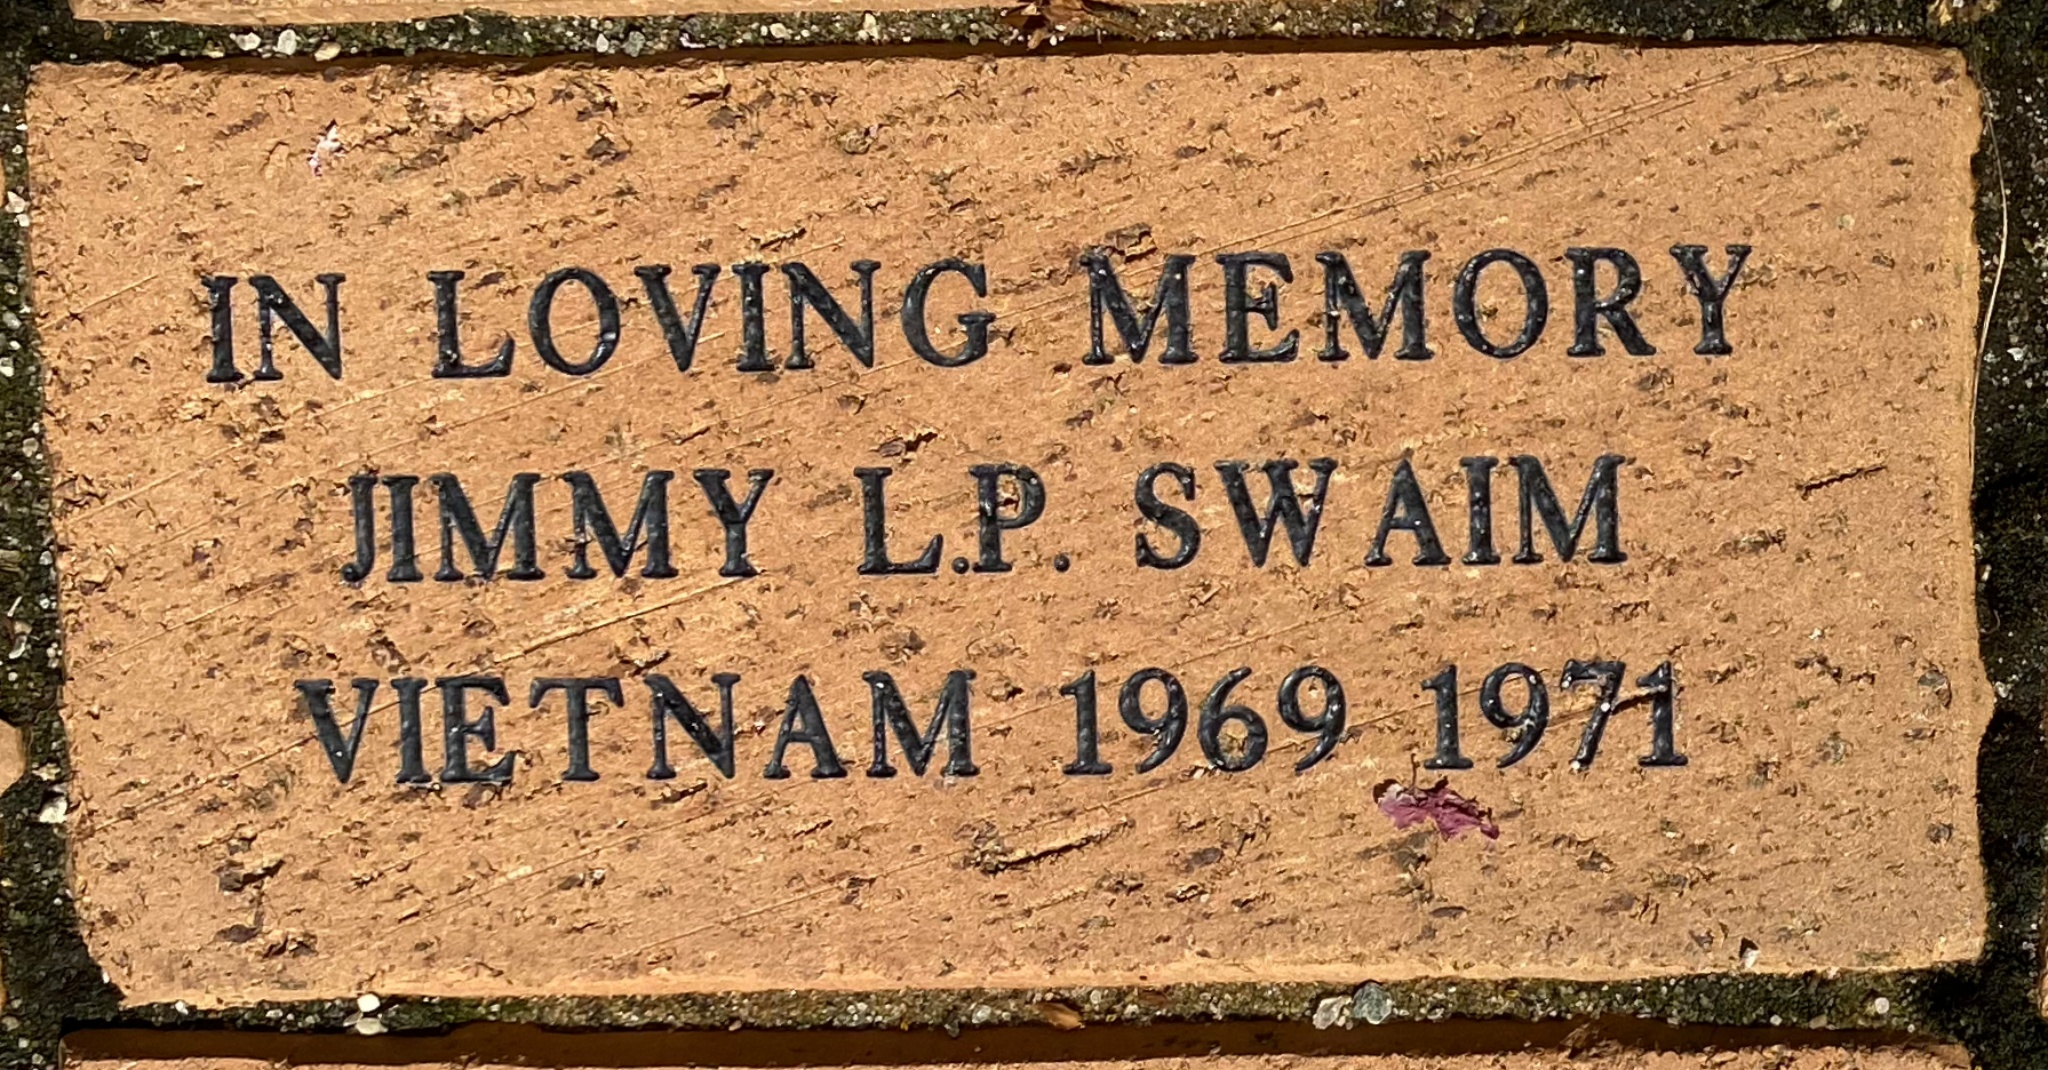 IN LOVING MEMORY JIMMY L.P. SWAIM VIETNAM 1969 1971